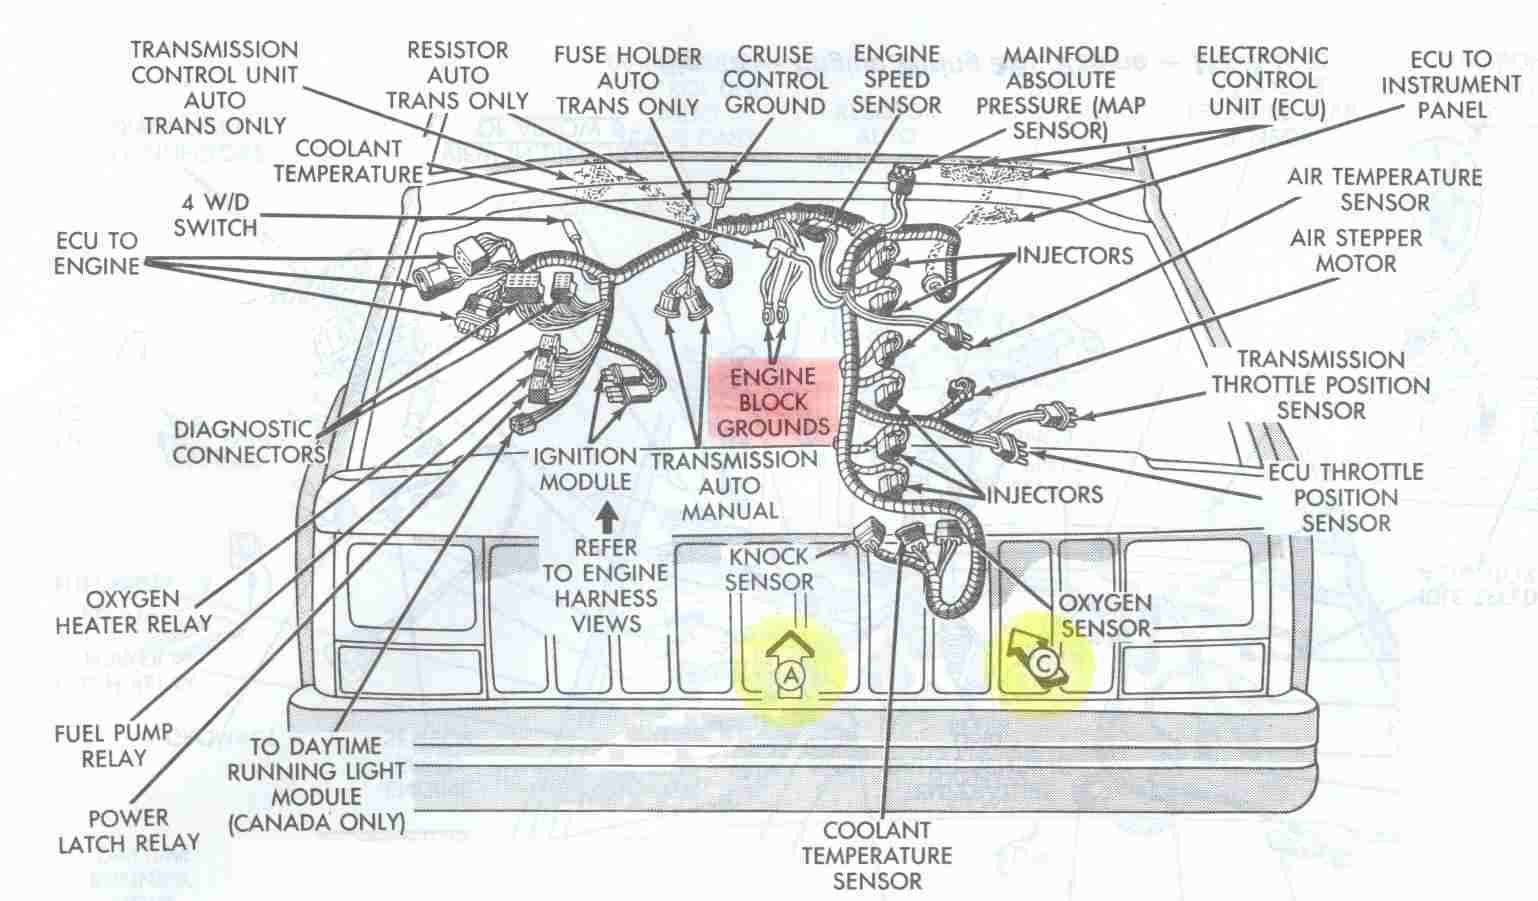 Engine Bay Schematic Showing Major Electrical Ground Points For 4 0l Jeep Cherokee Engines